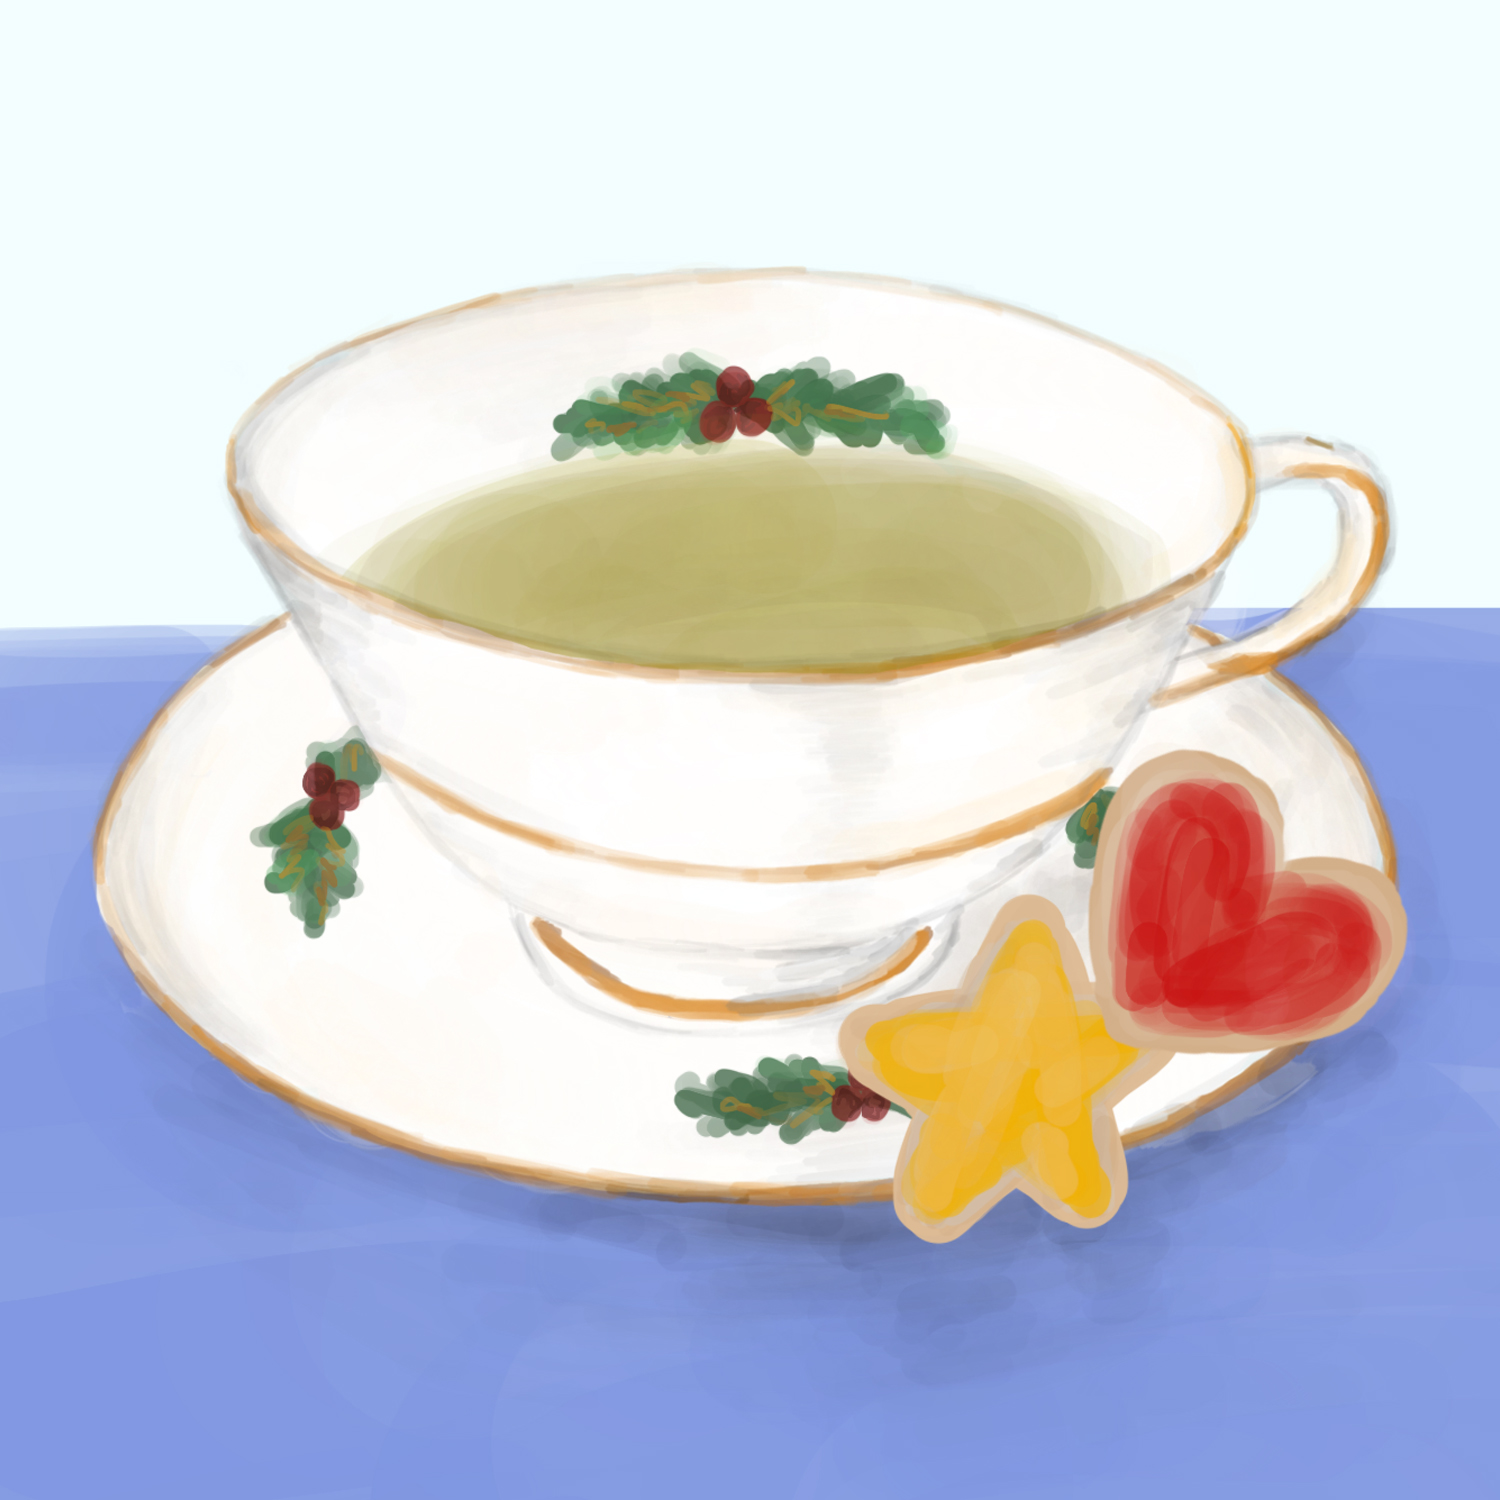 A holiday teacup with green tea in it with star and heart frosted sugar cookies resting on the saucer